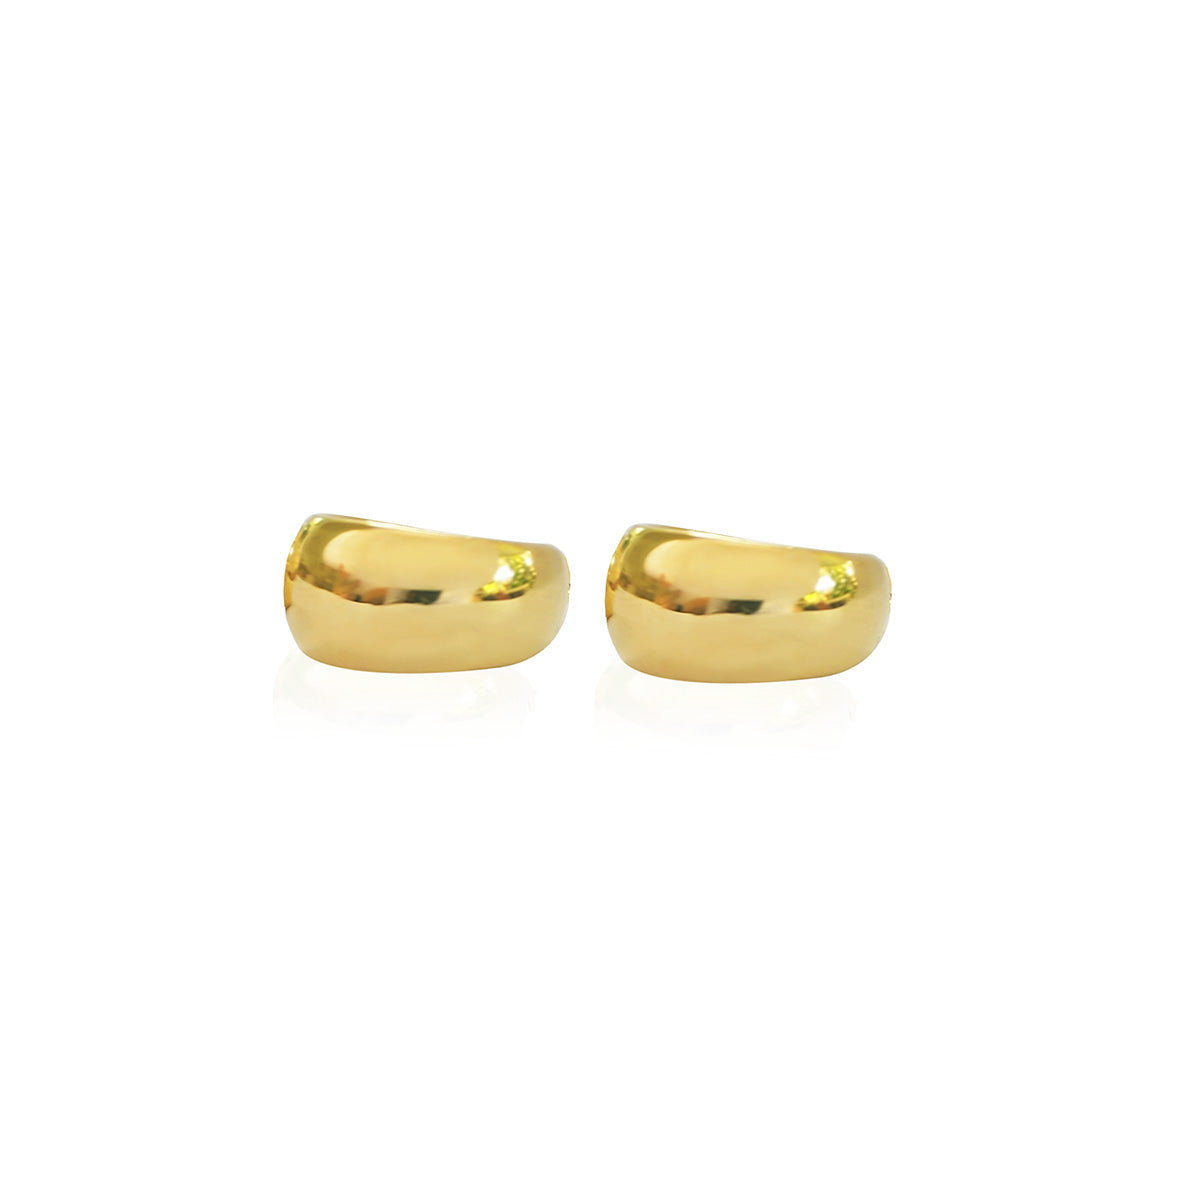 Recycled 9kt Solid Gold Smooth earrings